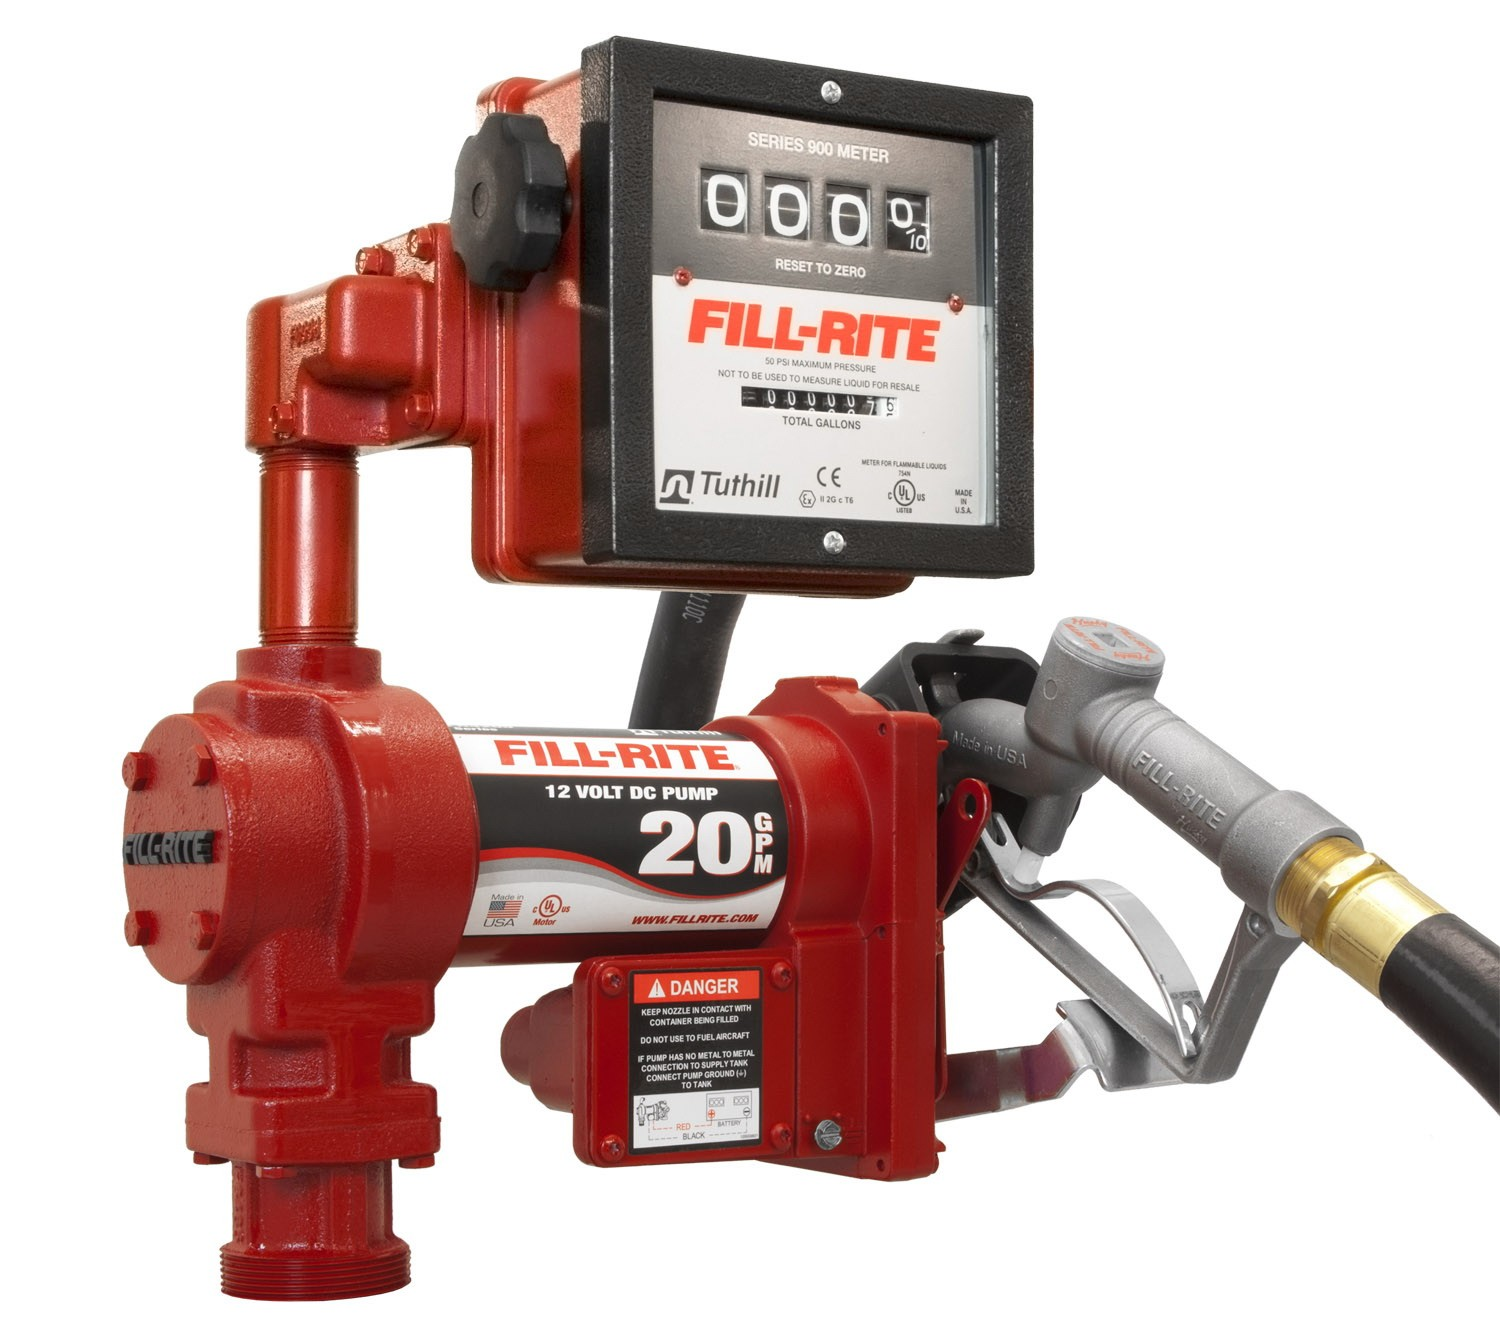 Fill-Rite FR4211G Hi-Flow Transfer Pump w/ 901 Meter and Manual Nozzle (19 GPM)